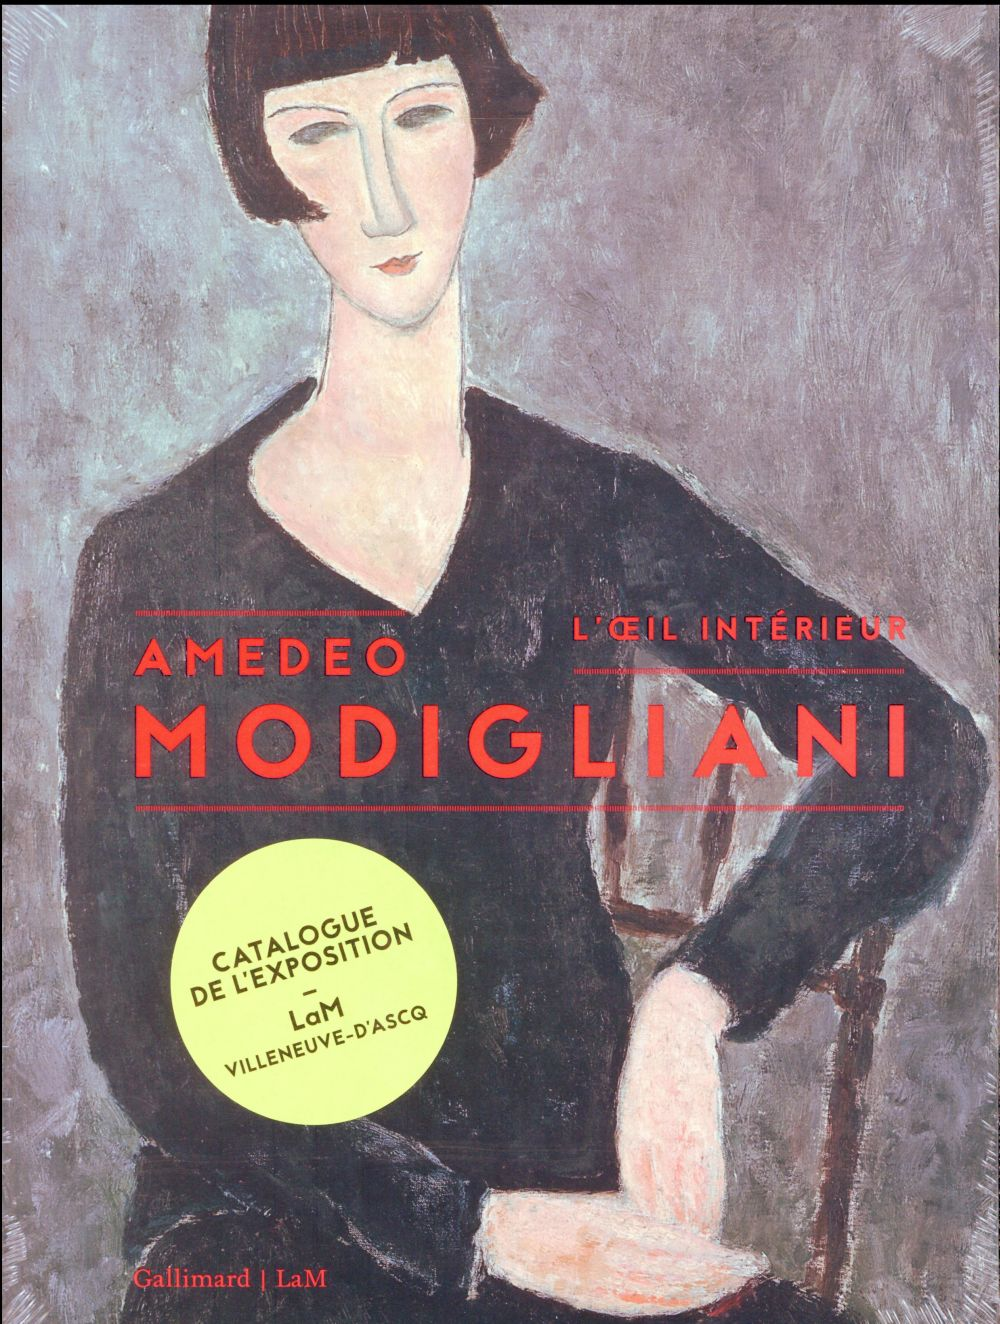 AMEDEO MODIGLIANI, L'OEIL INTERIEUR